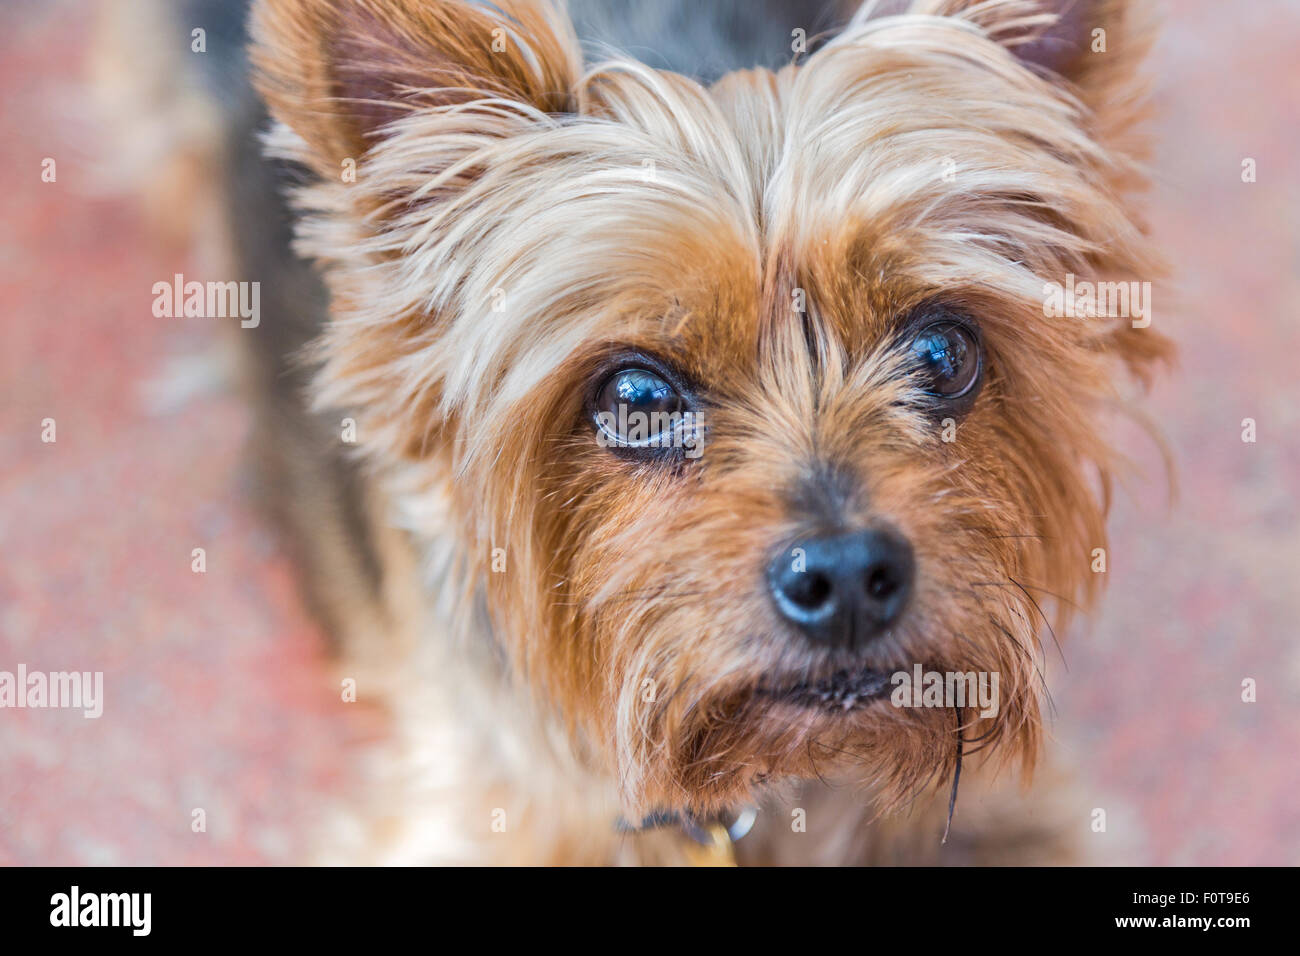 Close up head shot of Yorkshire terrier, a small, cute pet dog, a pampered pooch, with large, appealing eyes gazing - Stock Image